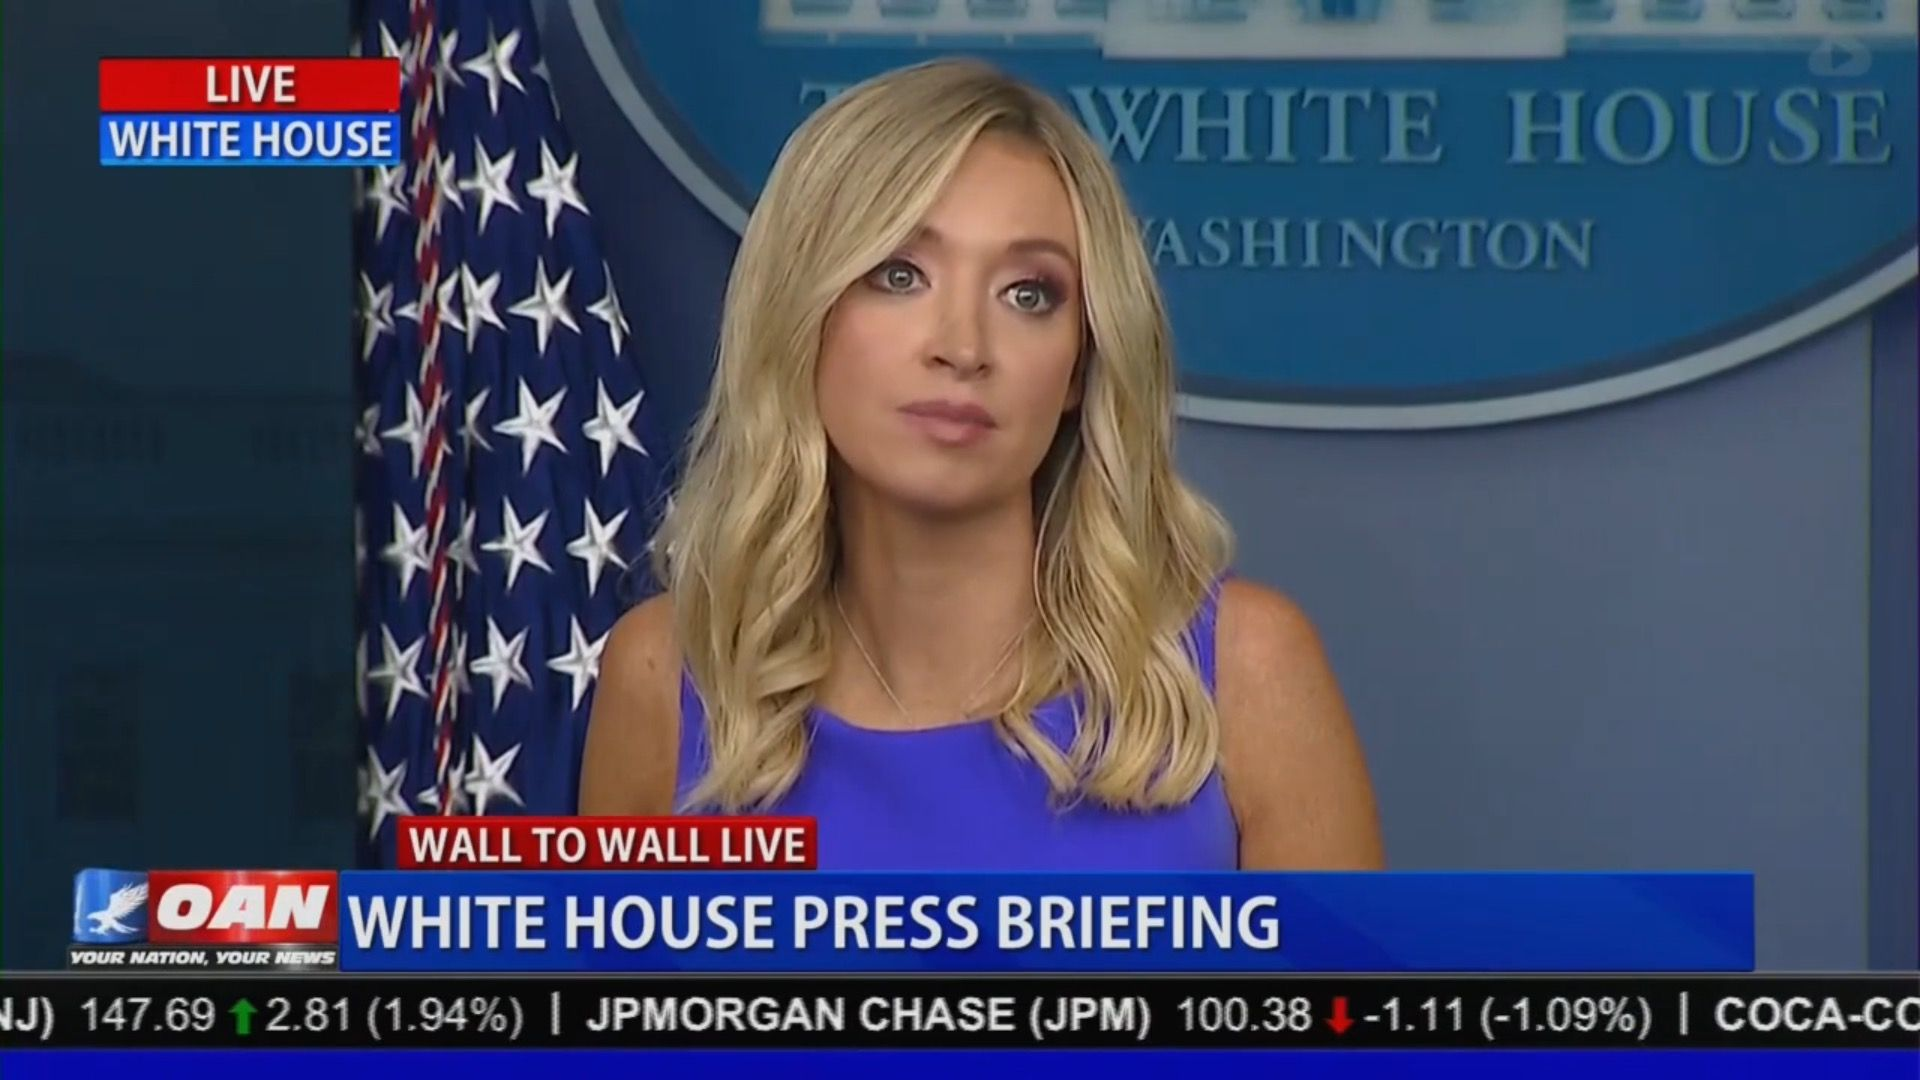 During White House Briefing Oan Correspondent Suggests Trump Lawyers Depose Joe Scarborough Over Conspiracy In 2020 Kayleigh Mcenany Joe Scarborough One America News